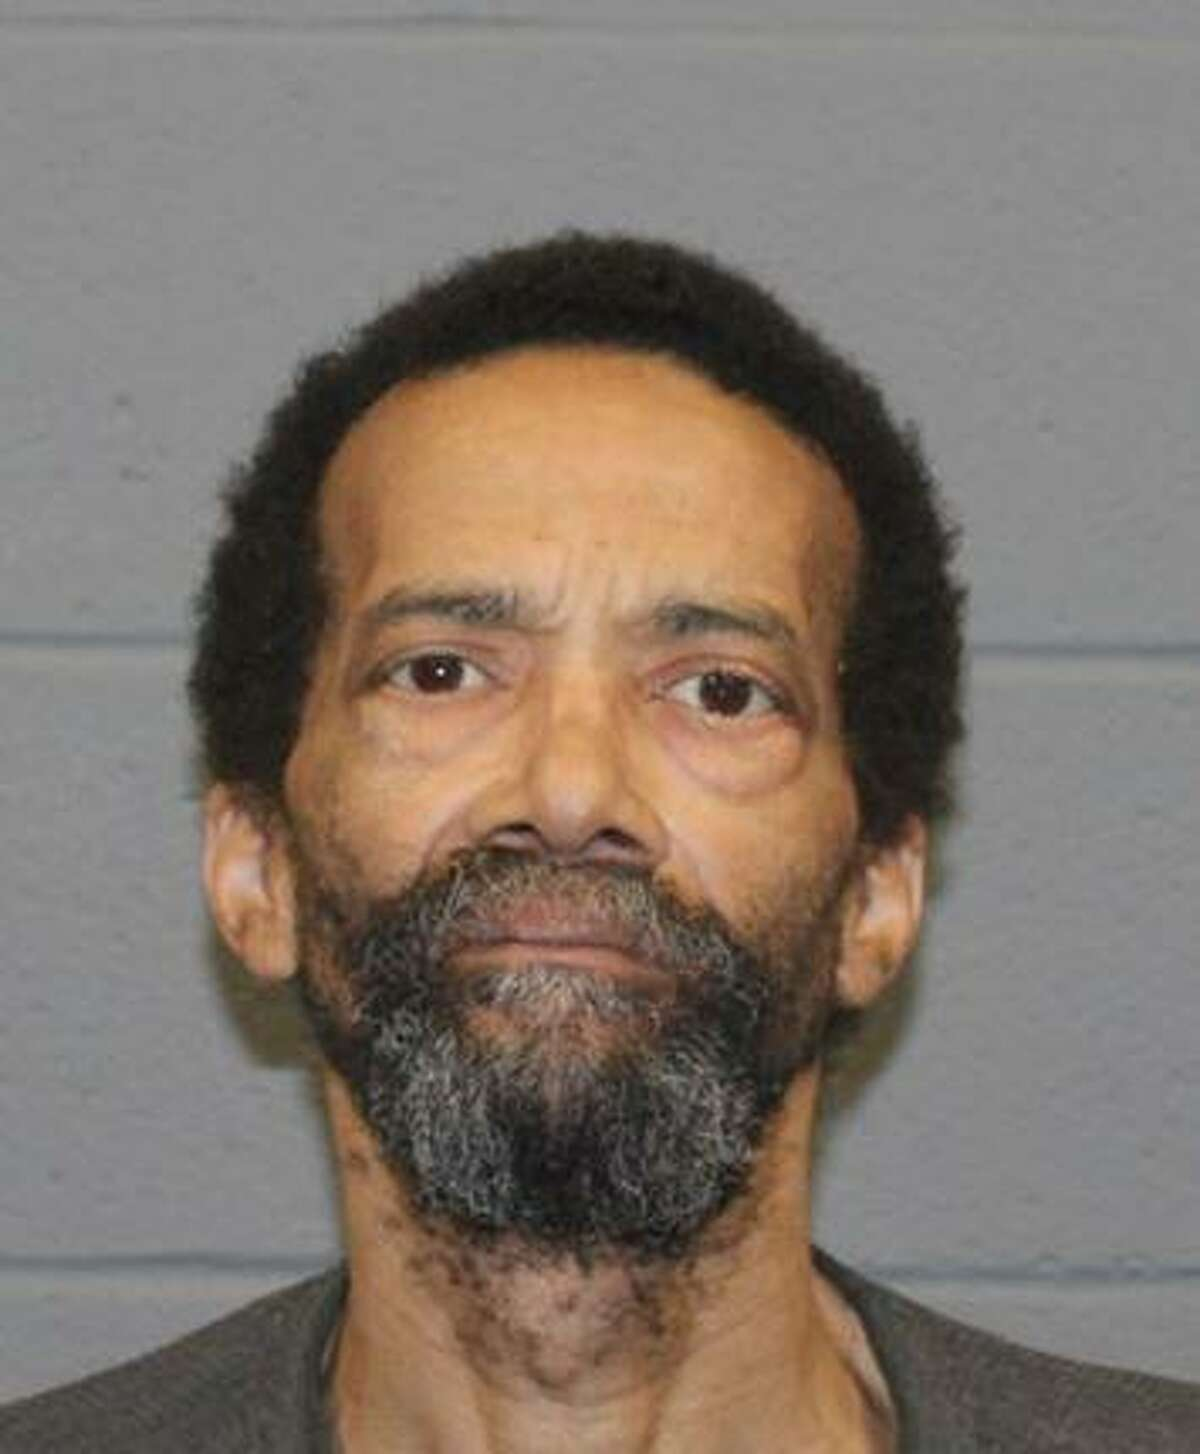 Clifford E. DeBaptiste, 57, of Waterbury, Conn., has been missing since Tuesday, Aug. 25, 2020.